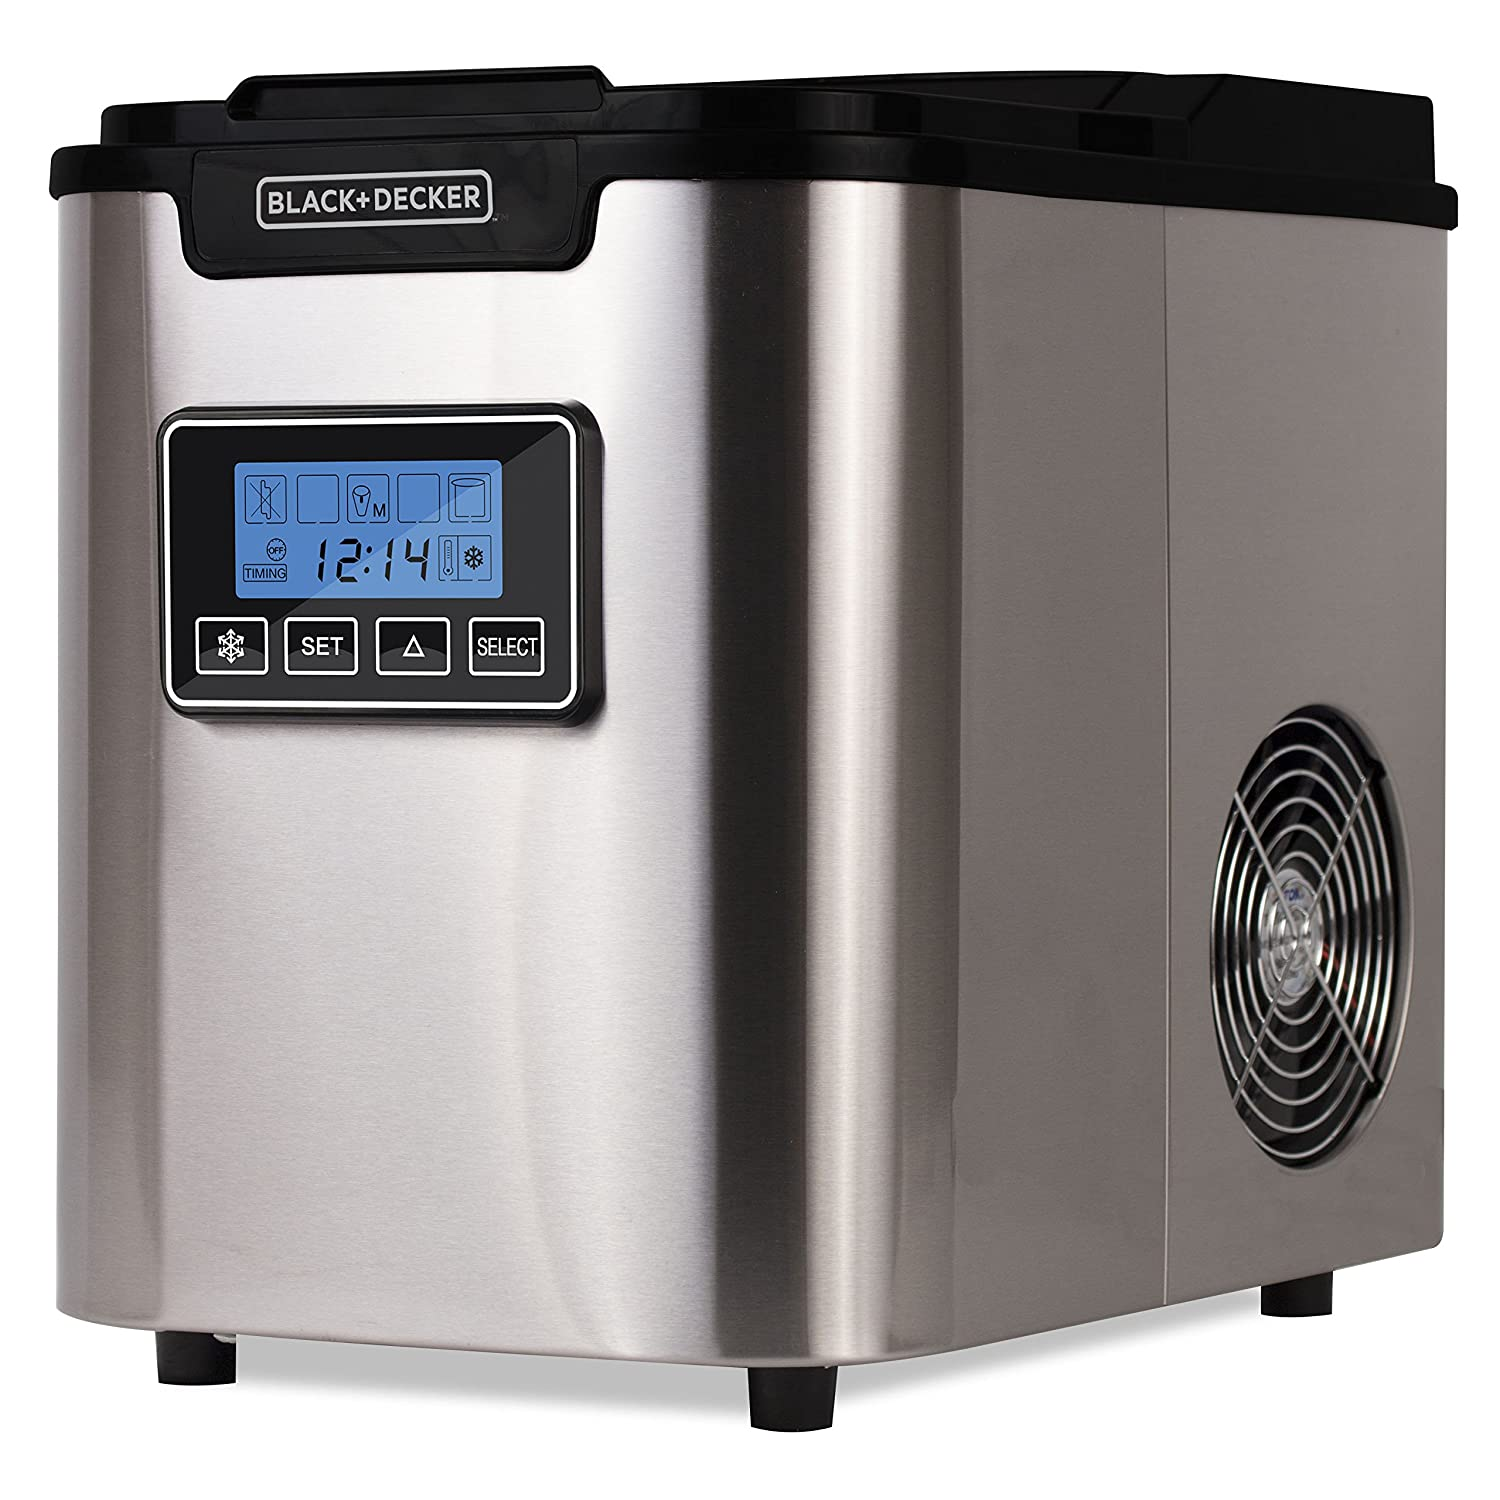 BLACK+DECKER Ice Maker- Countertop Ice Cube Machine for Cold Drinks with Choice of 3 Ice Cube Sizes- Stainless Steel with Black Lid (BIMY126S)